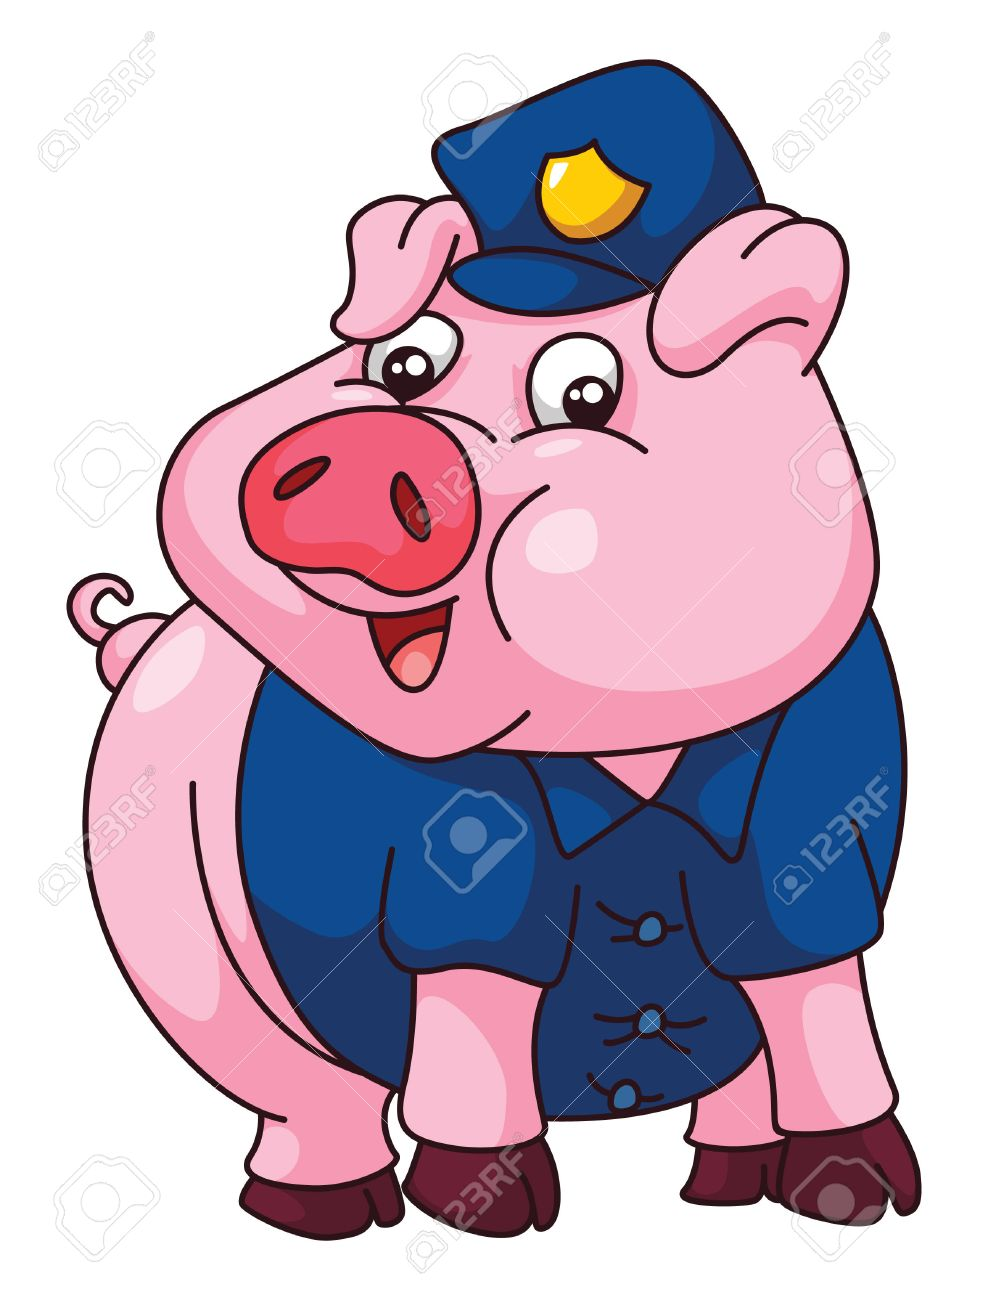 988x1300 Pig Police Royalty Free Cliparts, Vectors, And Stock Illustration